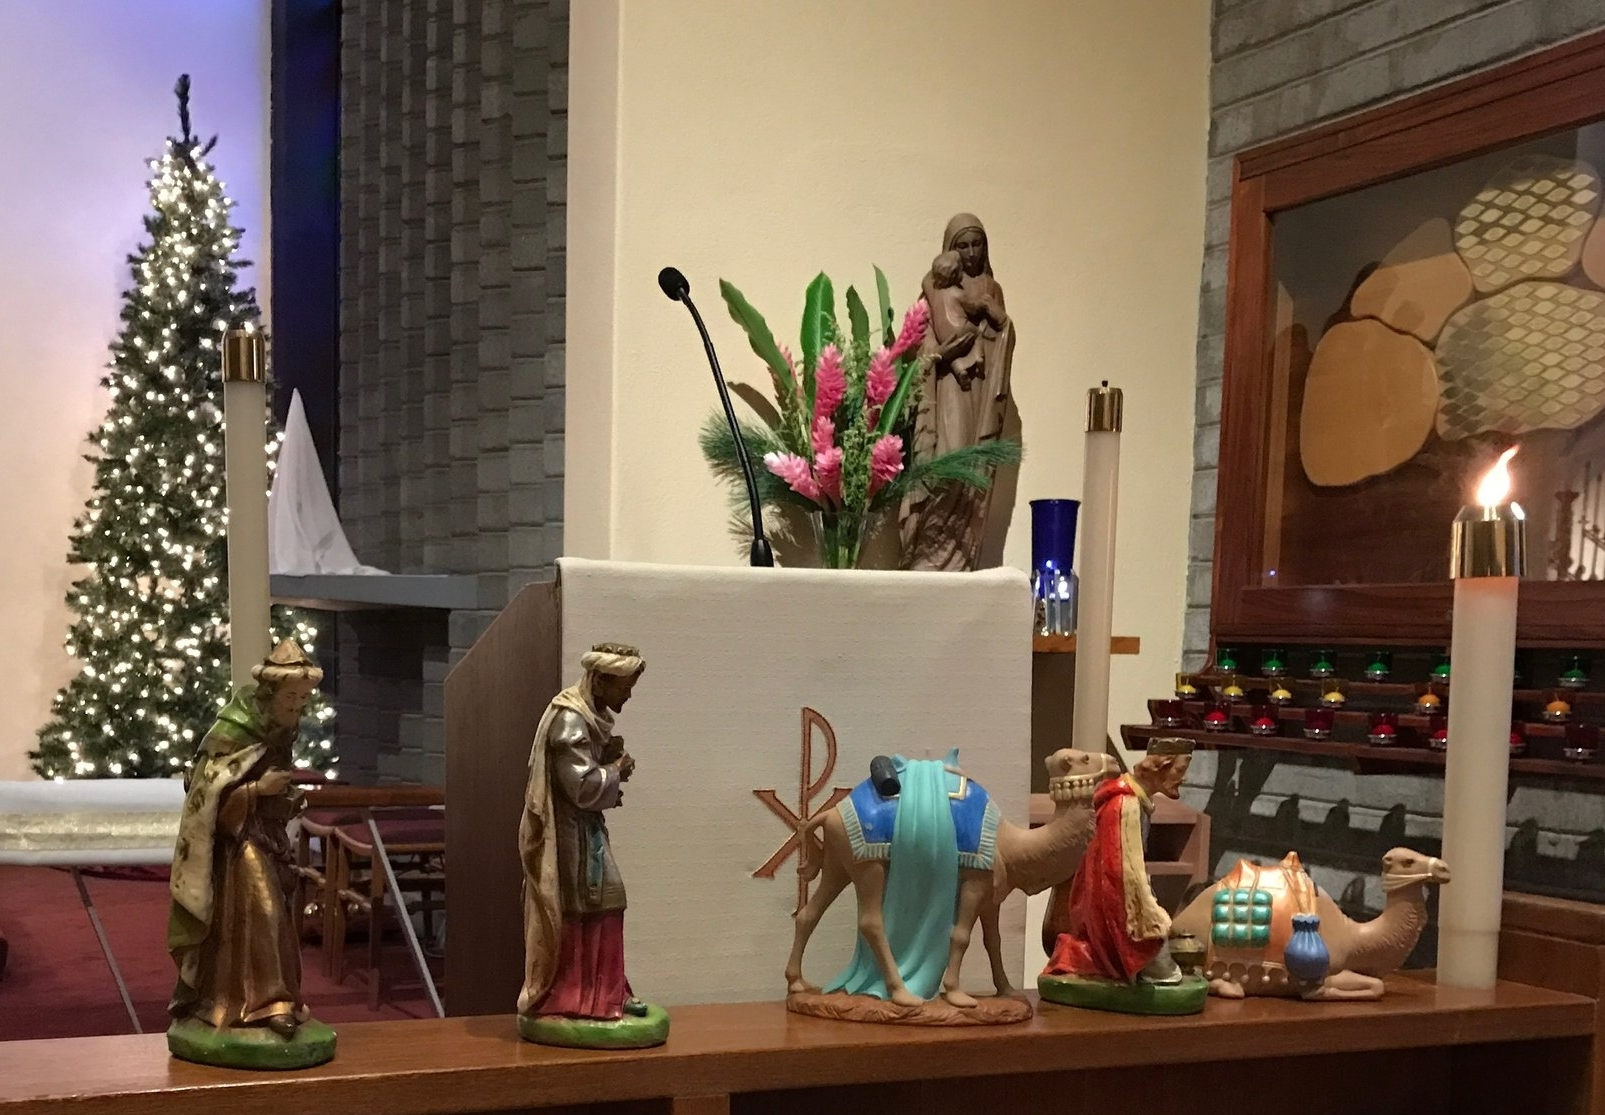 The Magi are making their way through the church to the stable. All travel reports indicate they will be on time for the High mass on January 6.